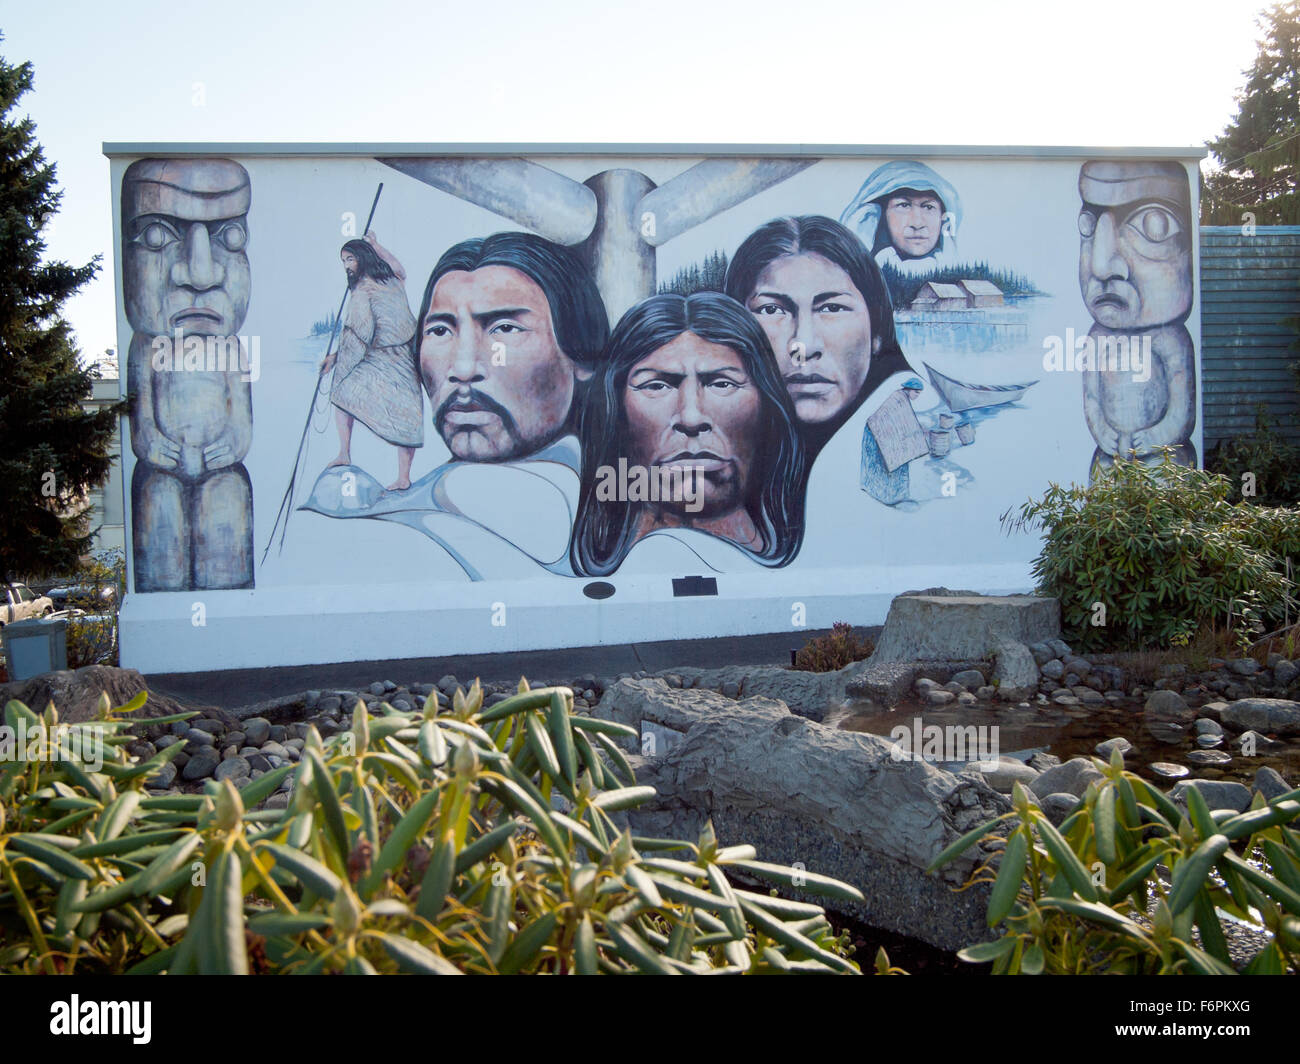 chemainus town outdoor wall murals vancouver island bc british the outdoor wall mural native heritage by artist paul ygartua in the town